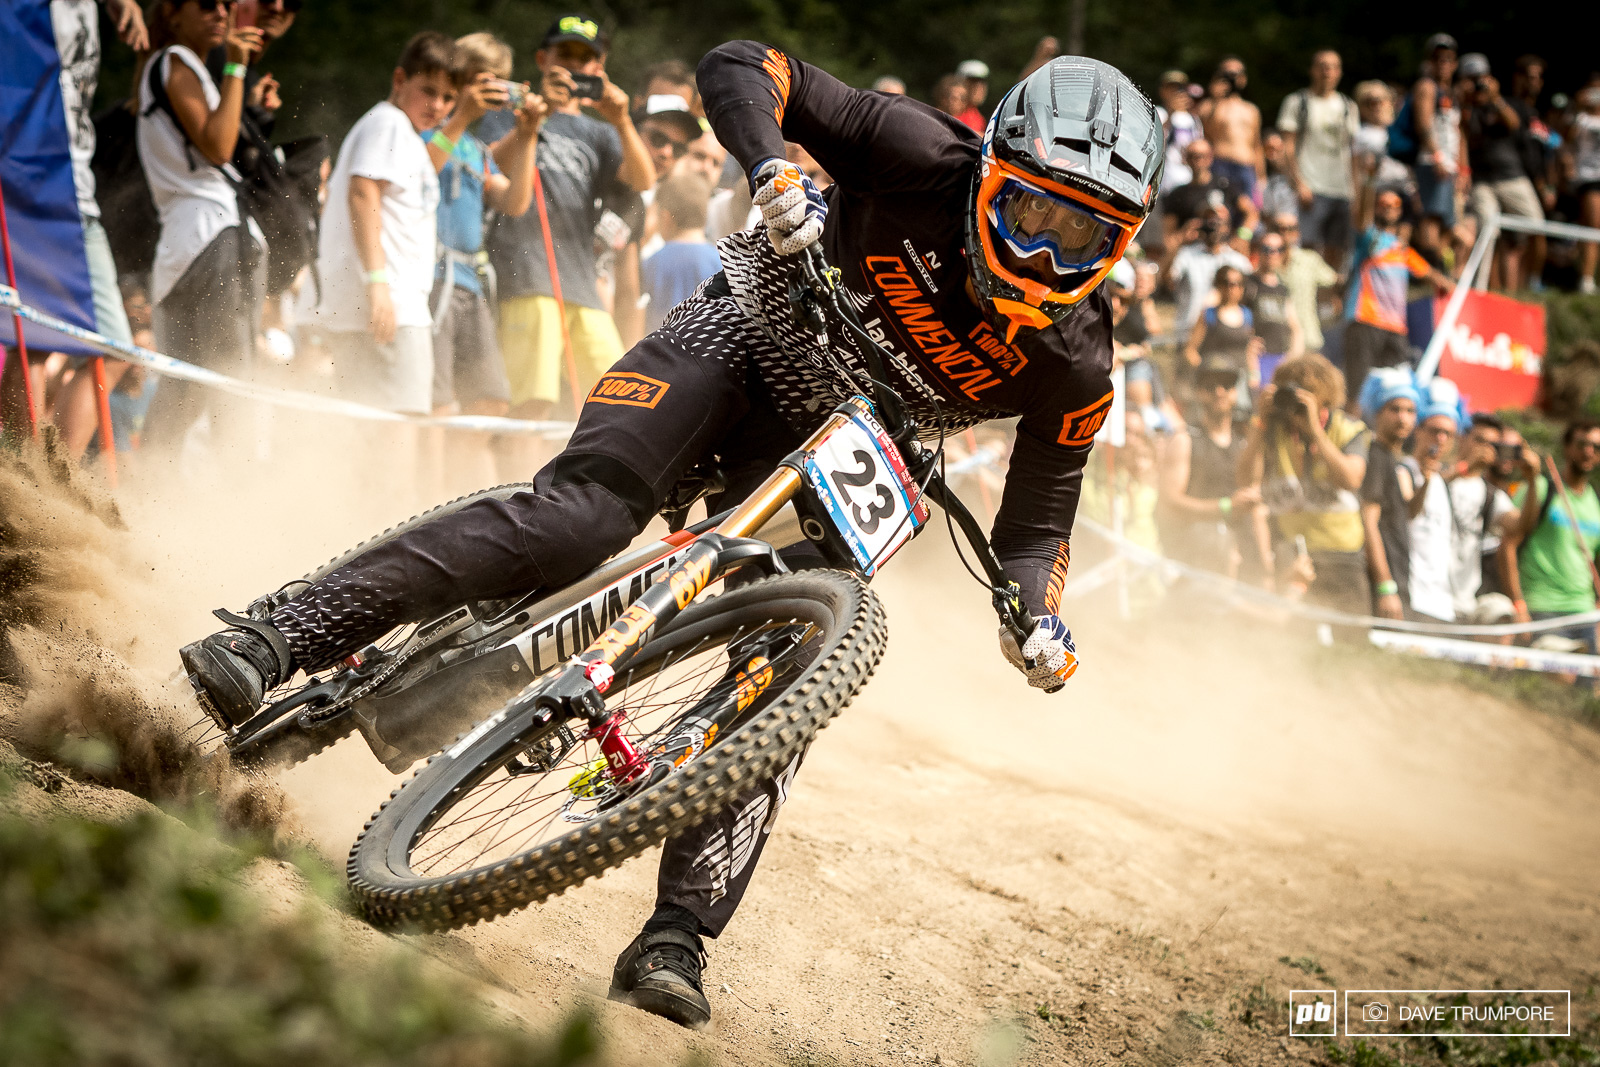 Foot out flat out and on a lose and aggressive run Amaury Pierron took home his best WC result ever with a 2nd place.